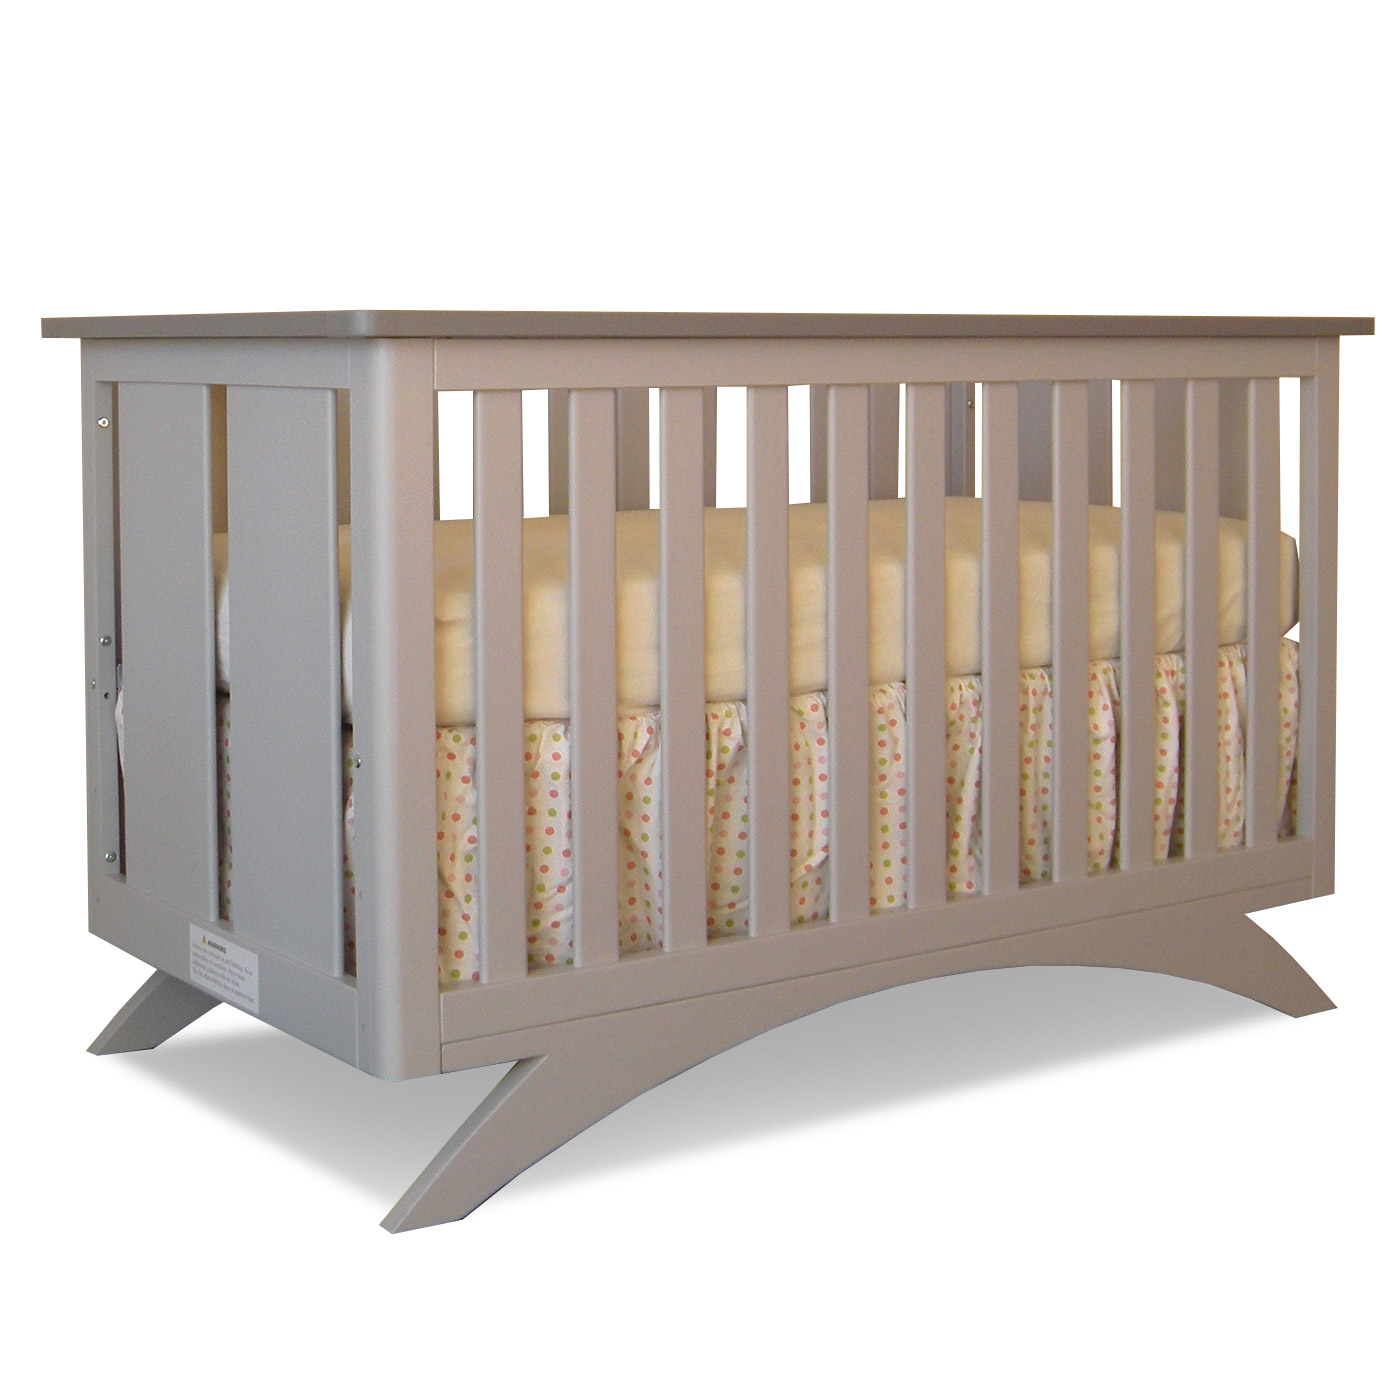 Eden baby madison 3 in 1 convertible crib in pebble grey seal grey free shipping